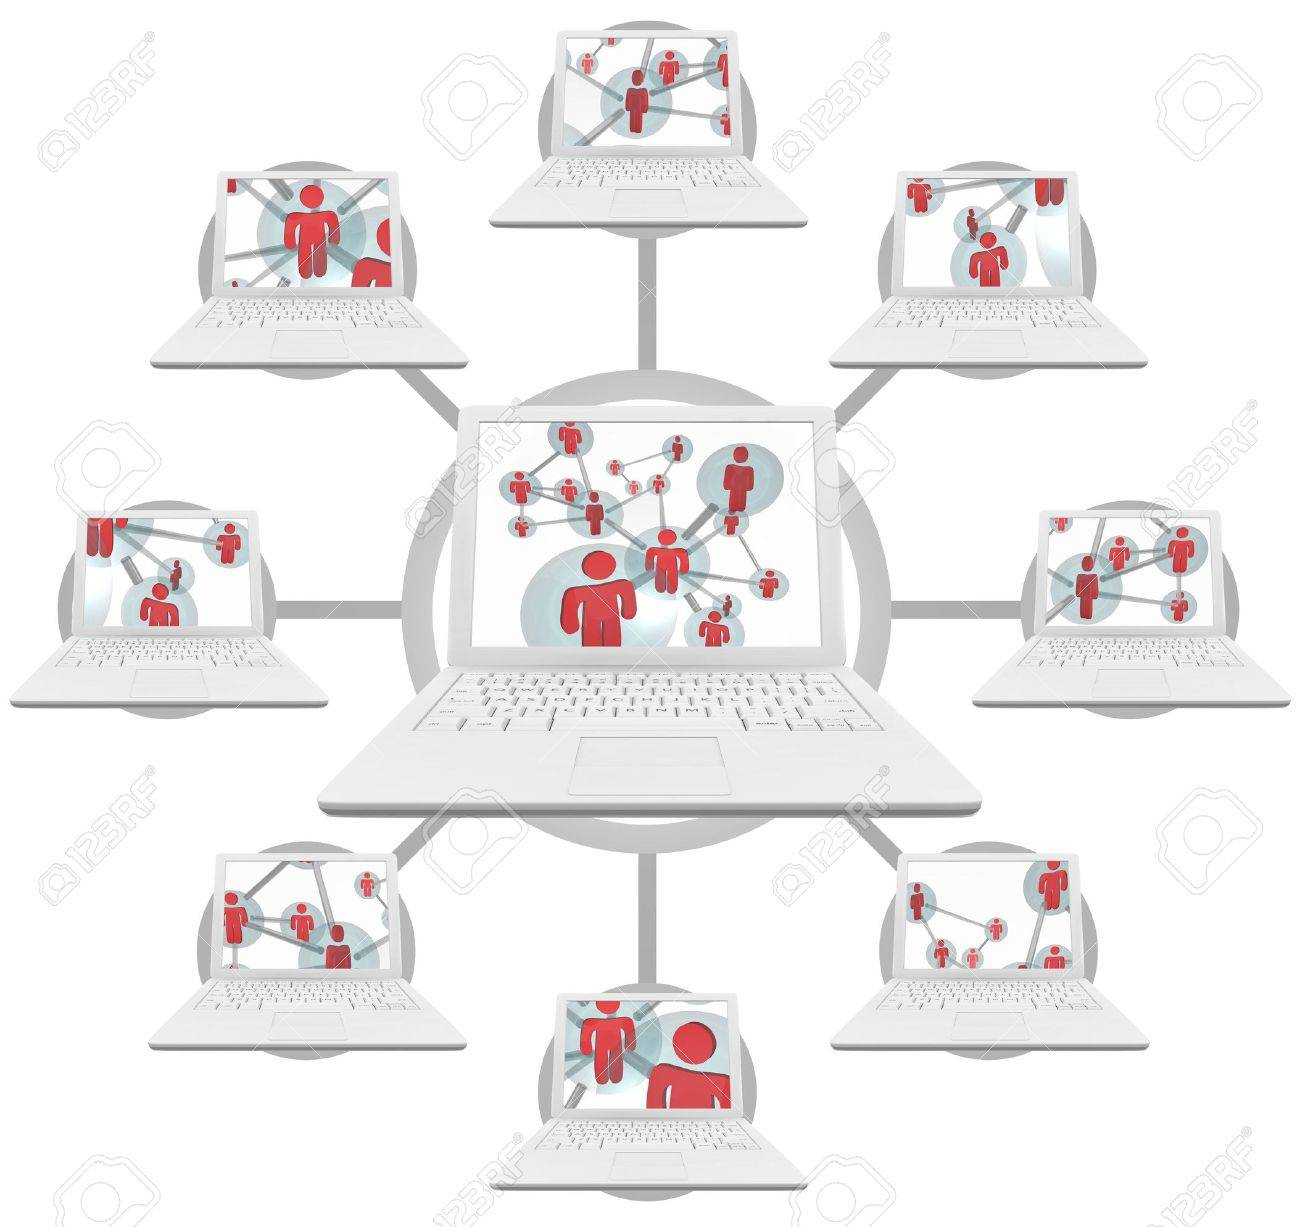 Illustration of connected laptop computers linked through social networks Stock Illustration - 5921127